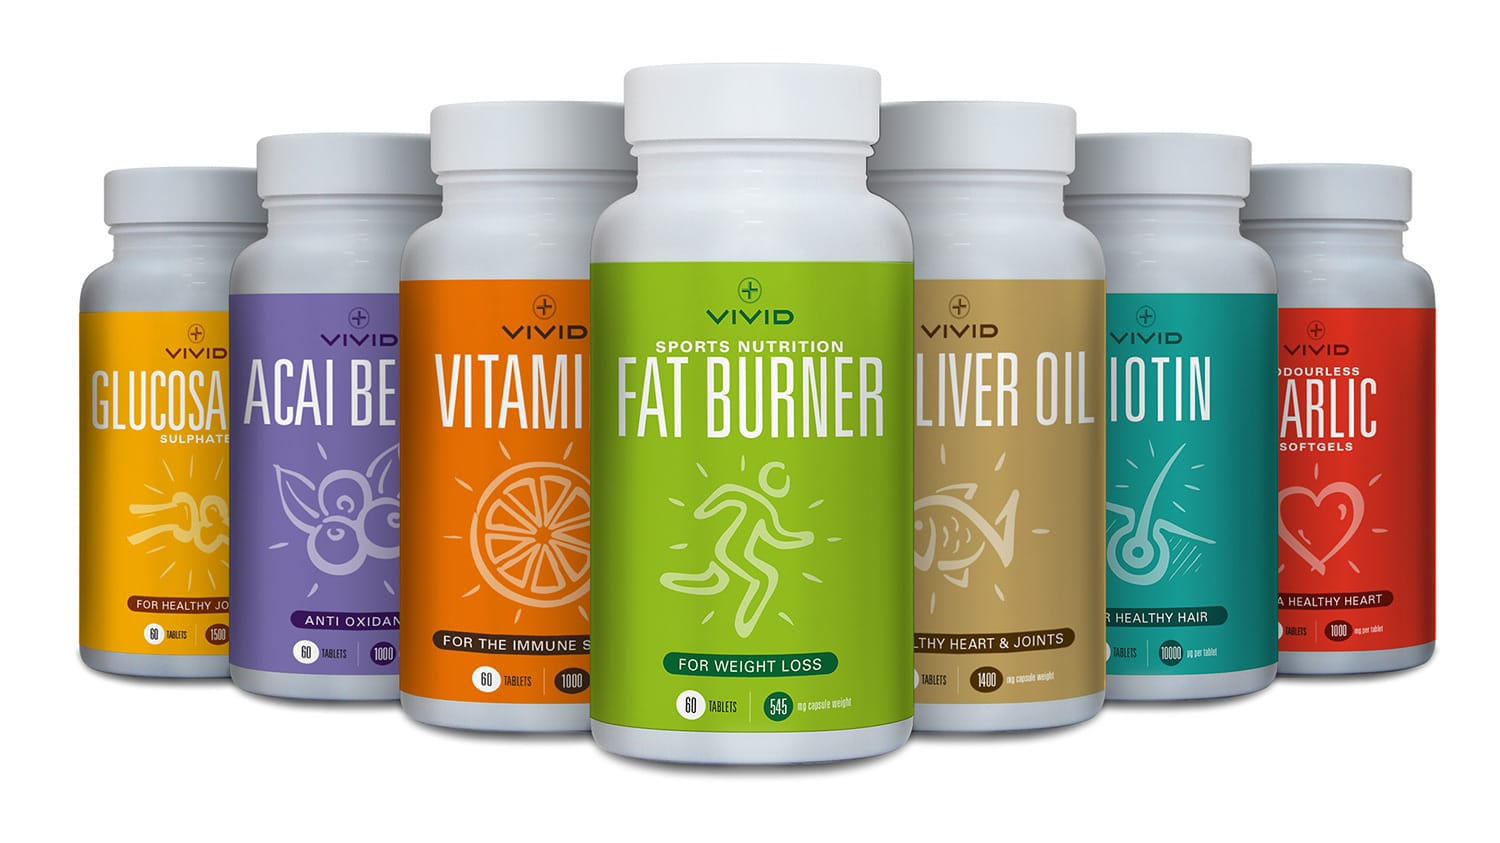 Vivid Health packaging design ranges